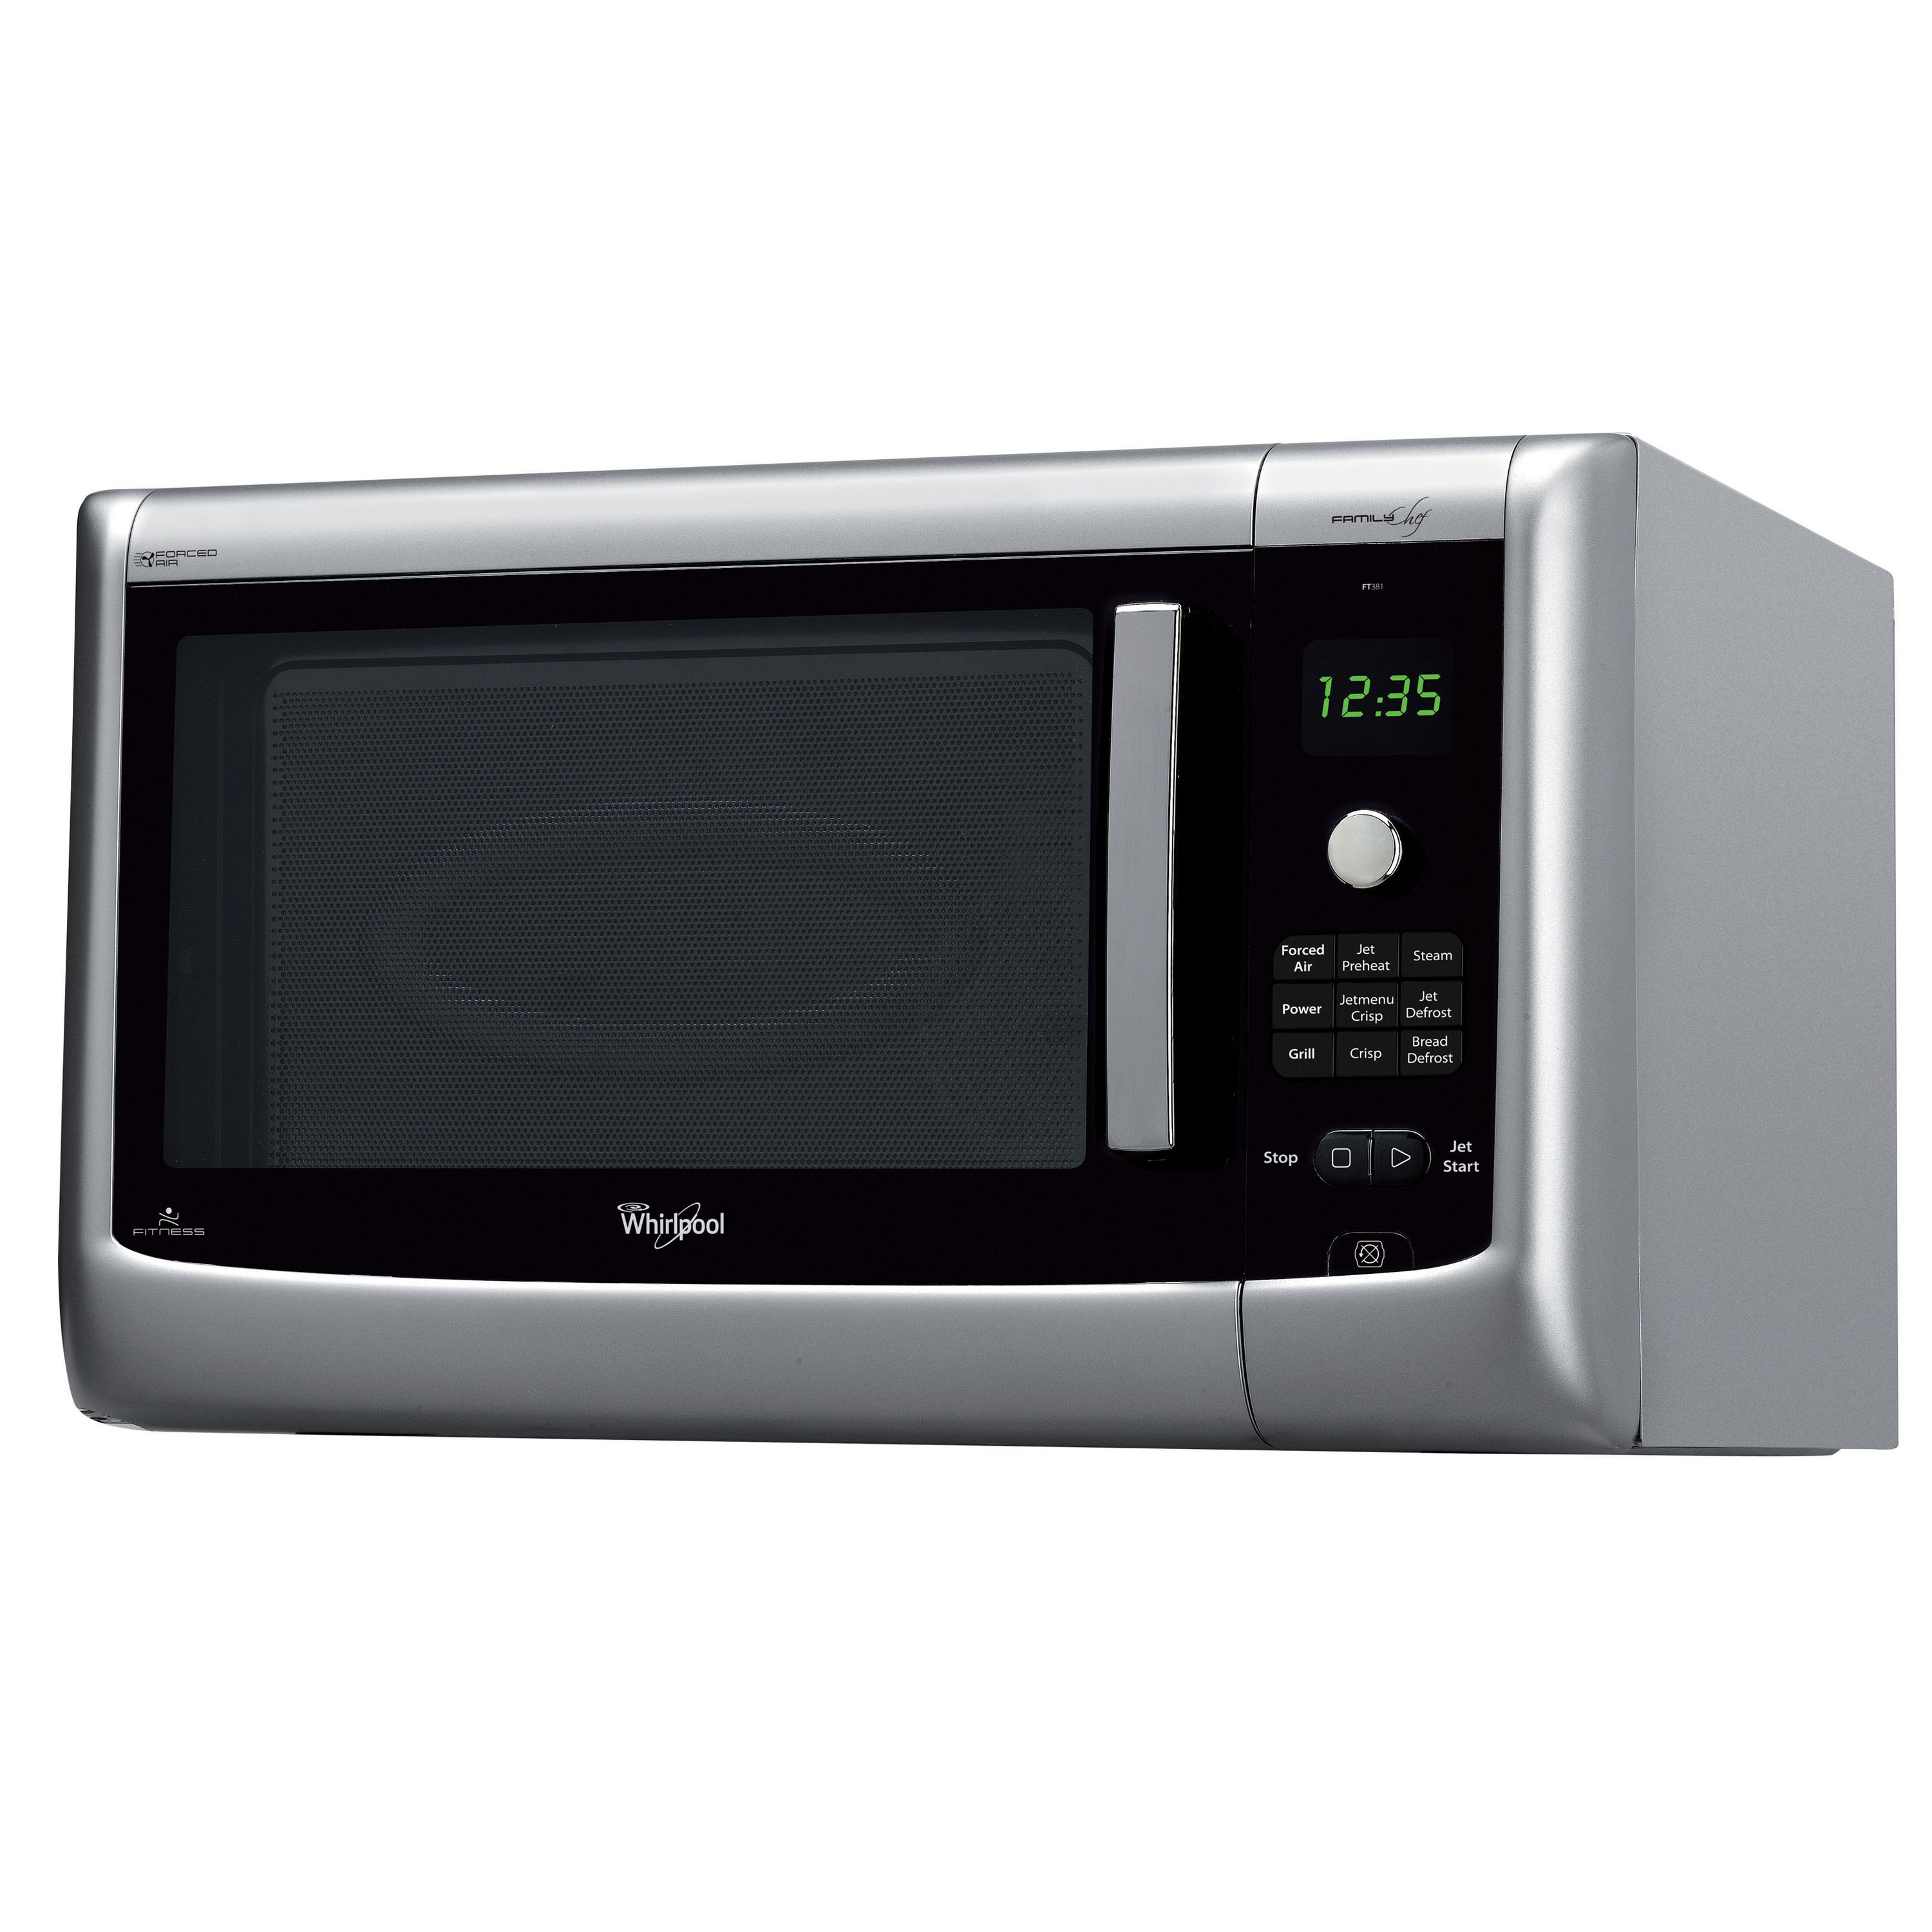 Whirlpool Microwave Oven ~ Whirlpool oven jet chef microwave convection